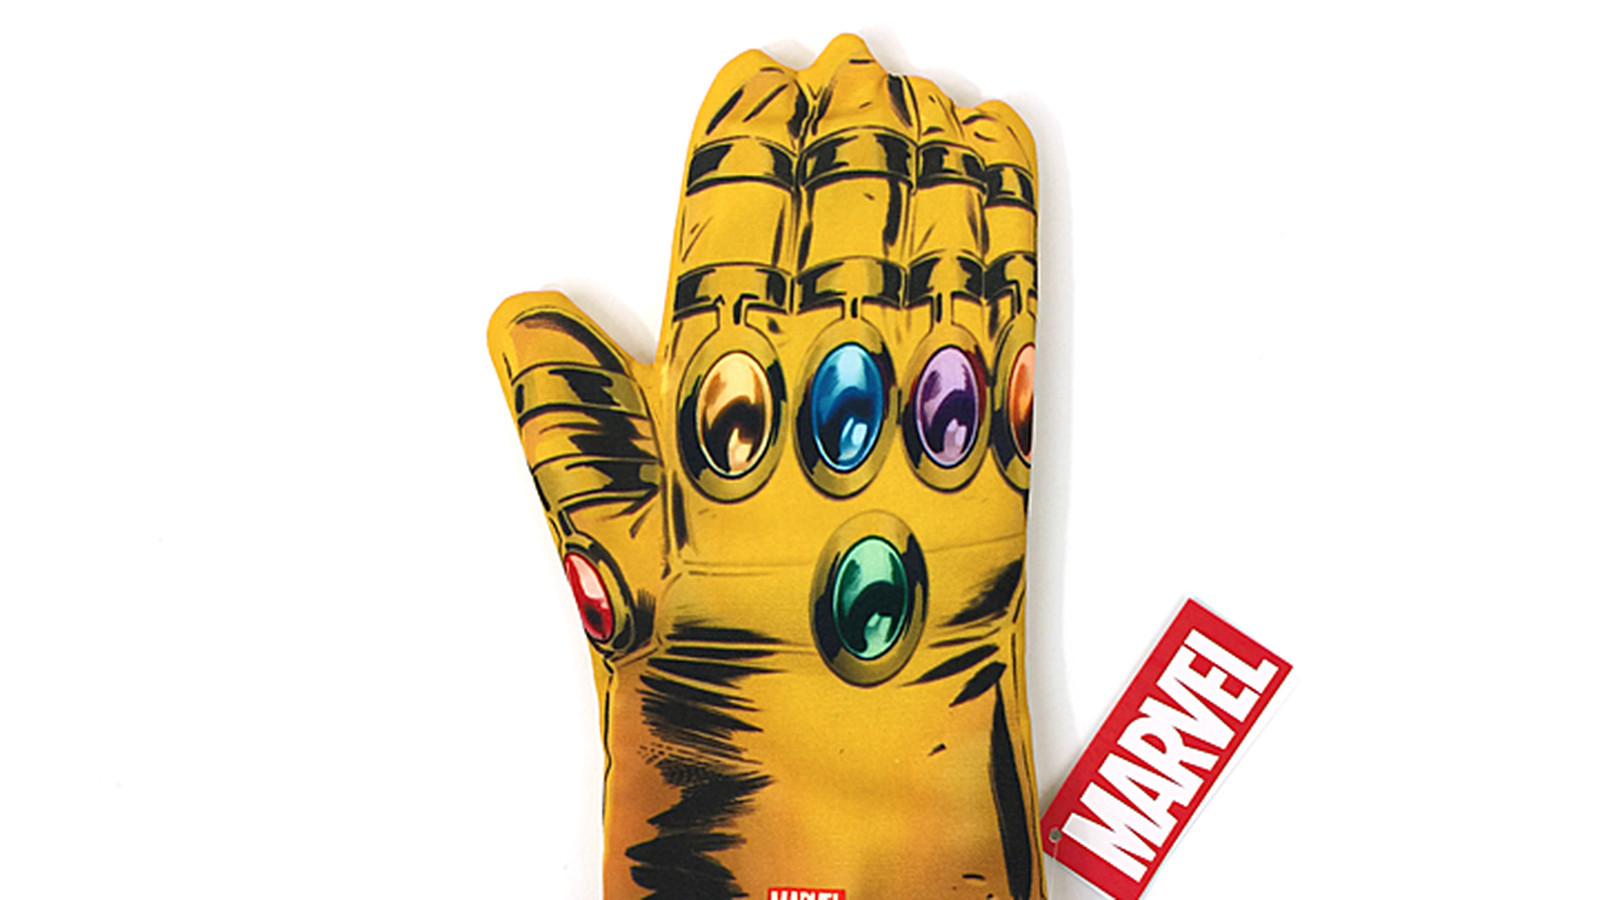 Thanos Almighty Infinity Gauntlet Defeated By Above